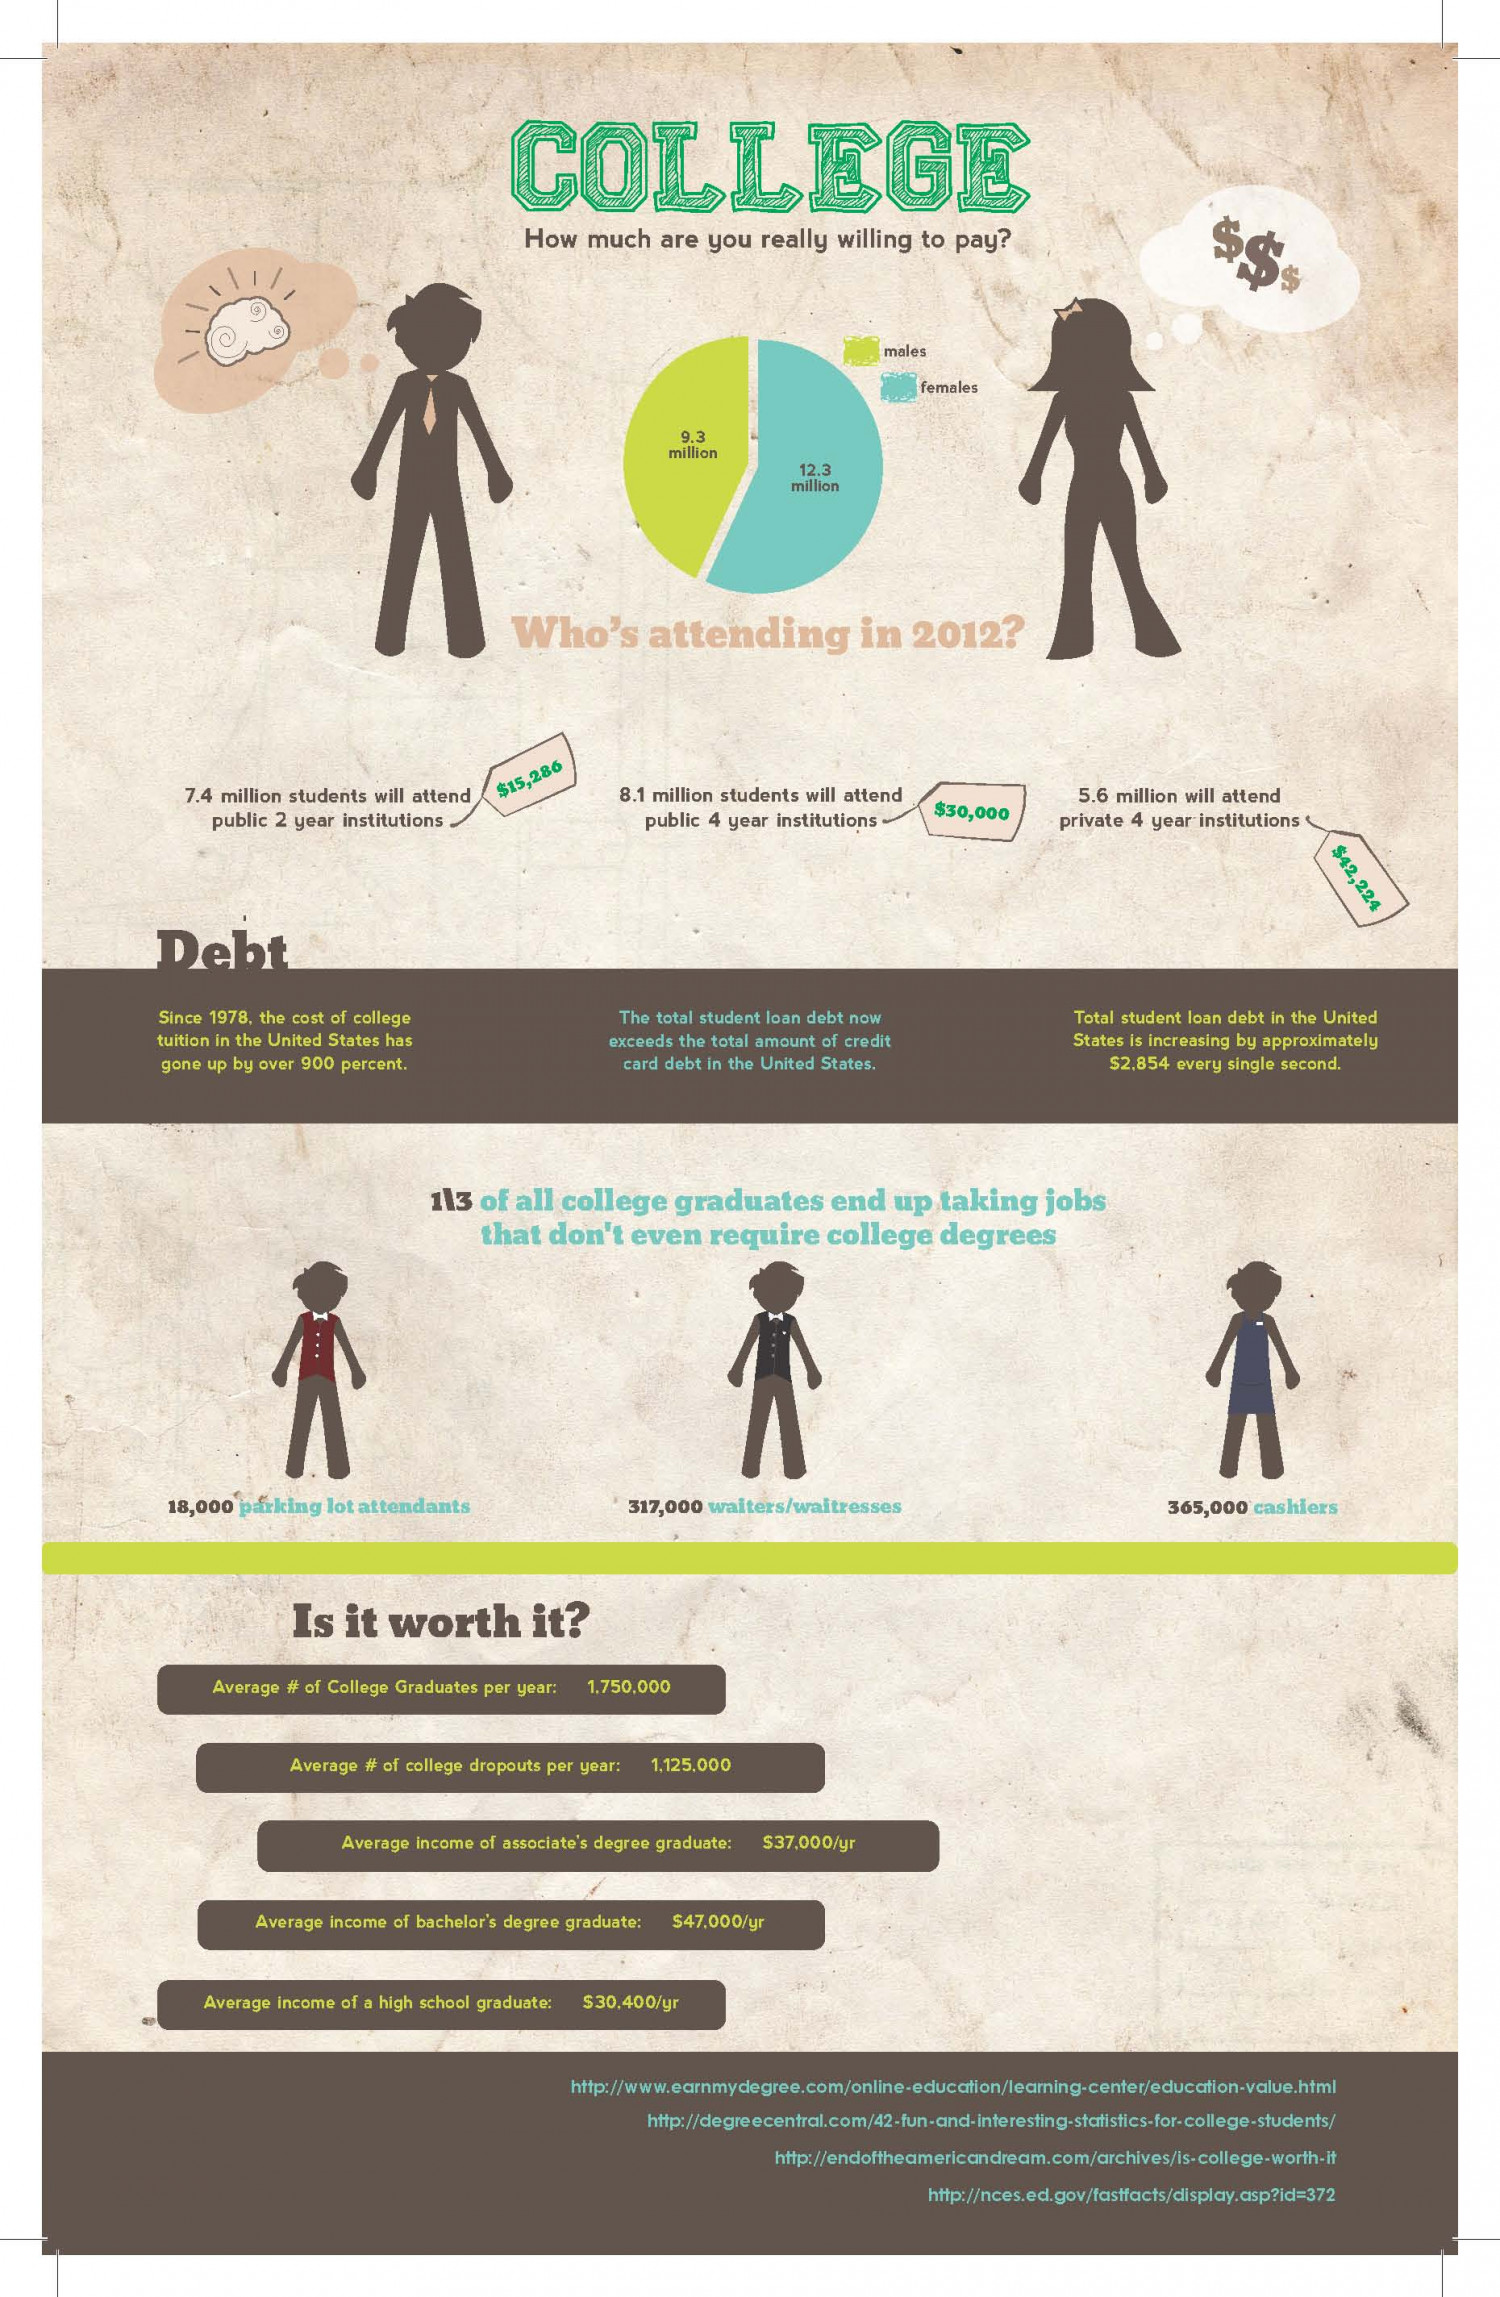 College: How Much Are You Really Willing to Pay? Infographic